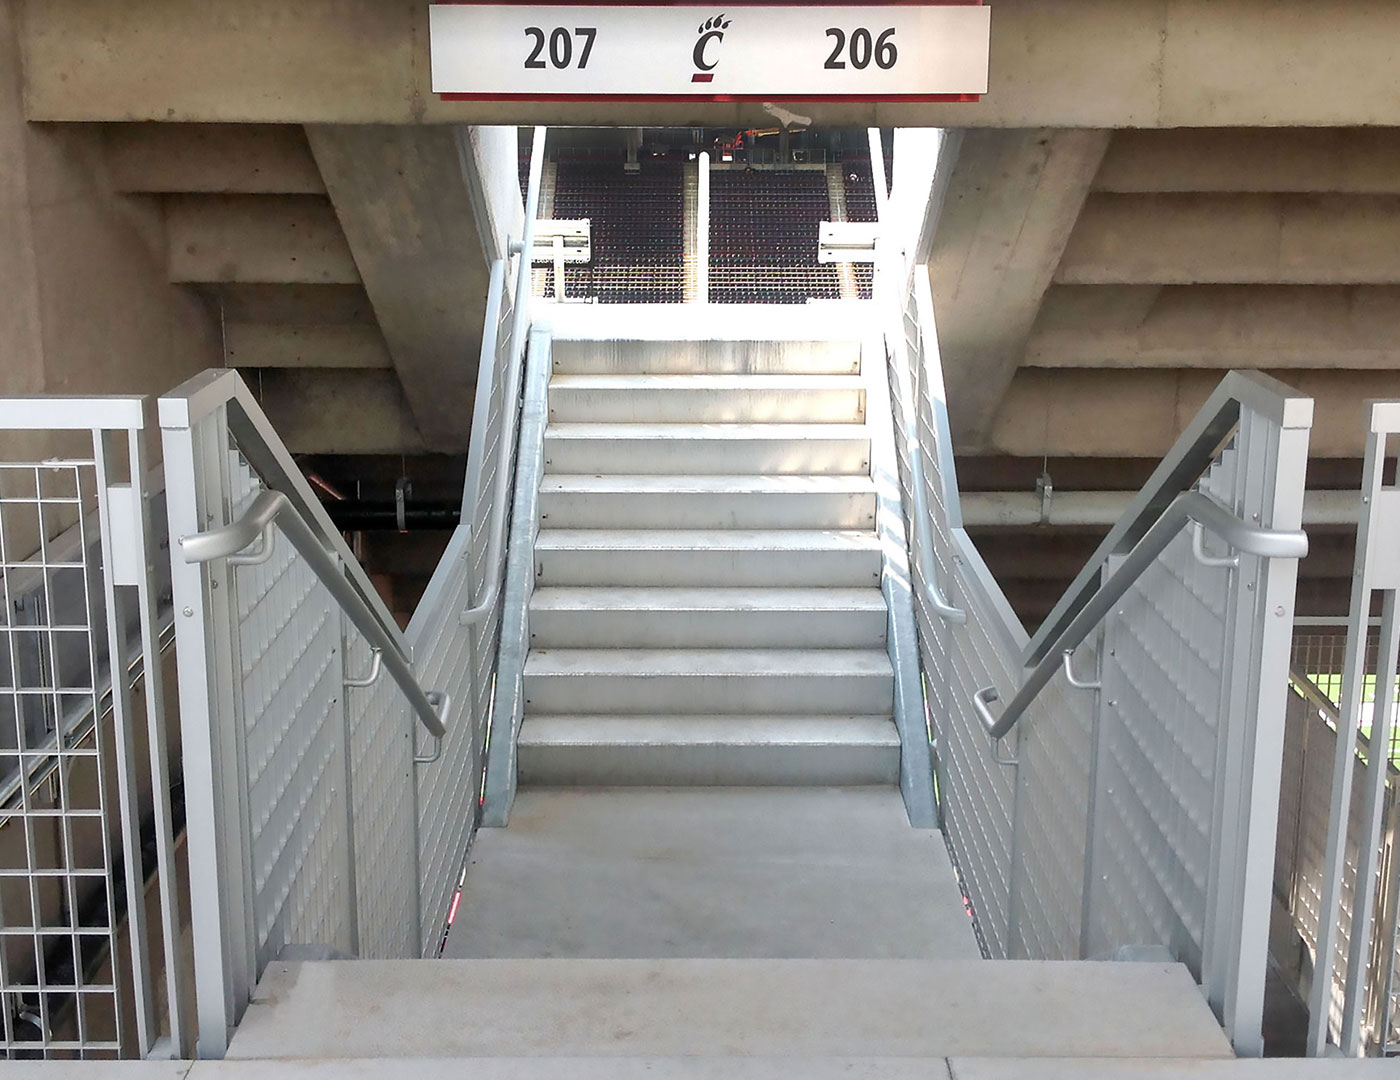 Gridguard grated railing on elevated bridges at college football stadium